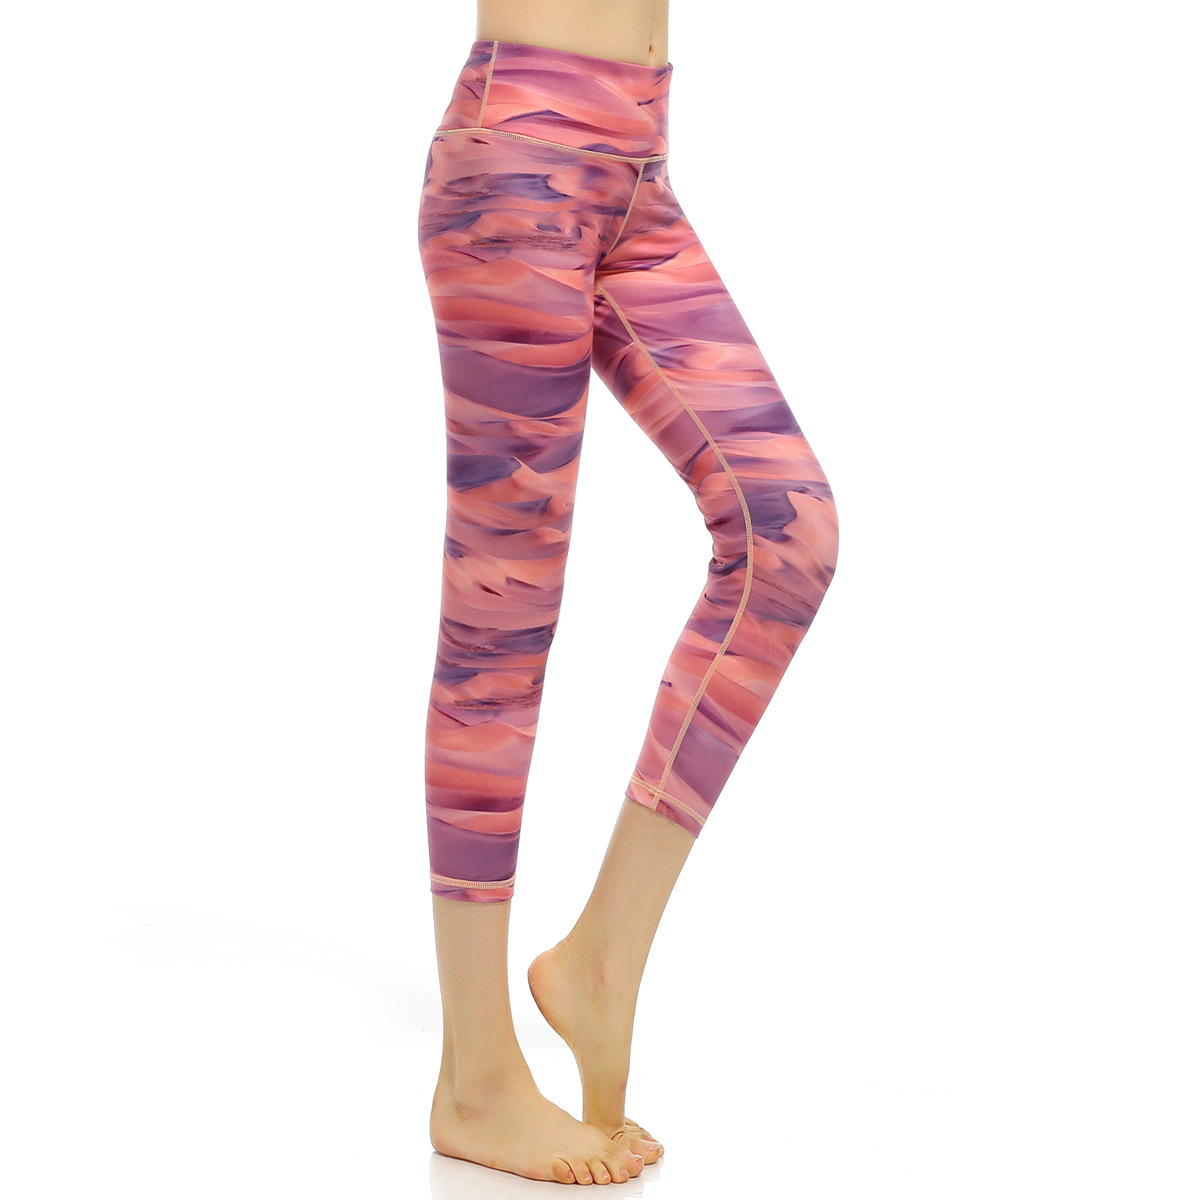 Ropa Deportiva Elasticity Print Quick Dry Sporting Leggings Pink Women Compression Pants Rainforest Printing Legging Leggins